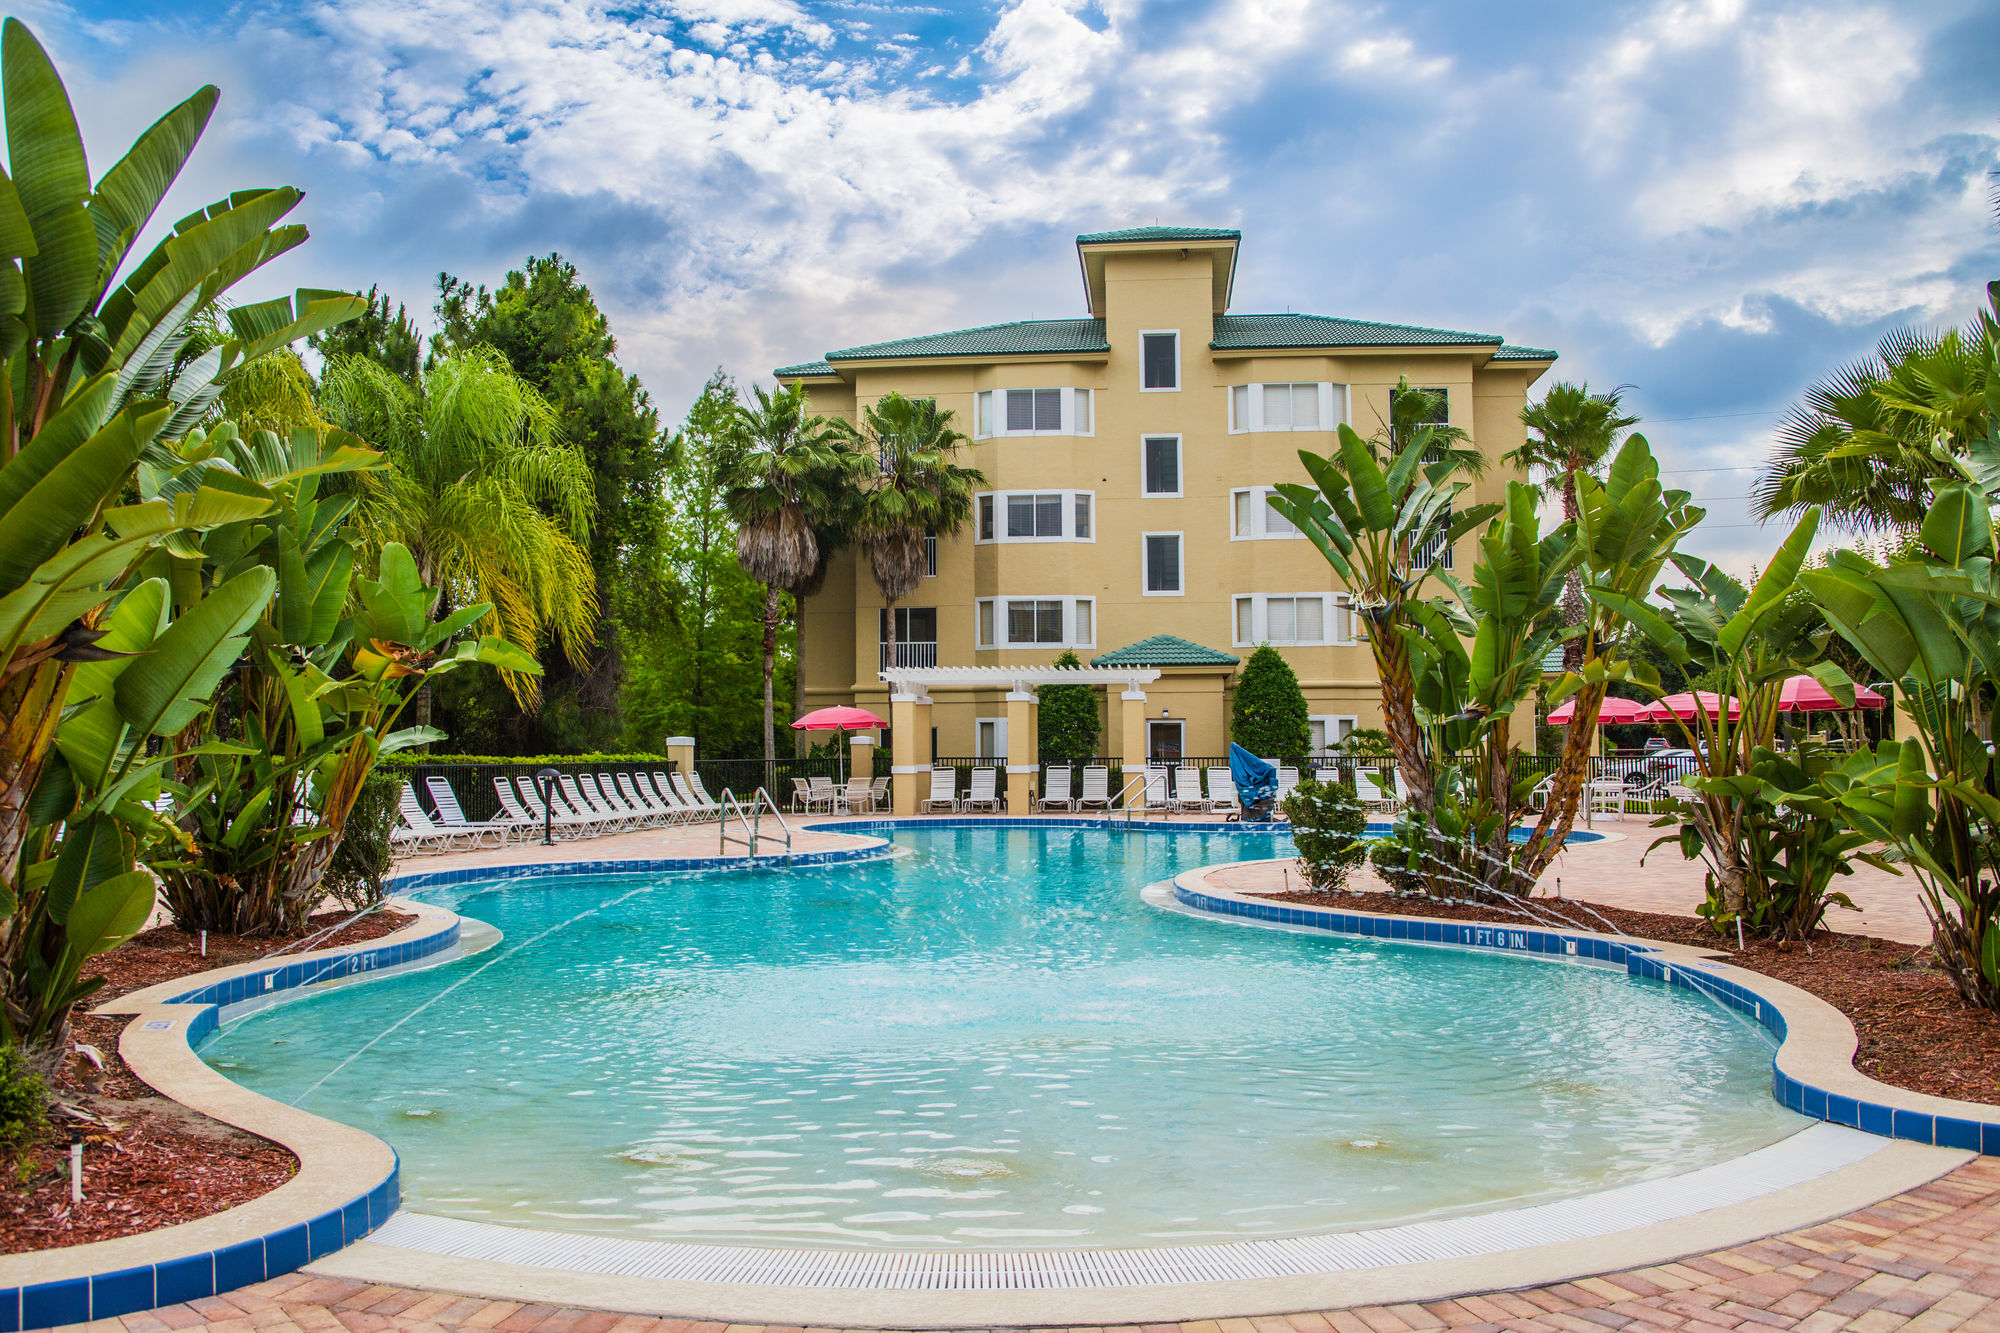 Silver Lake Resort Reviews  Information  Orlando Resort